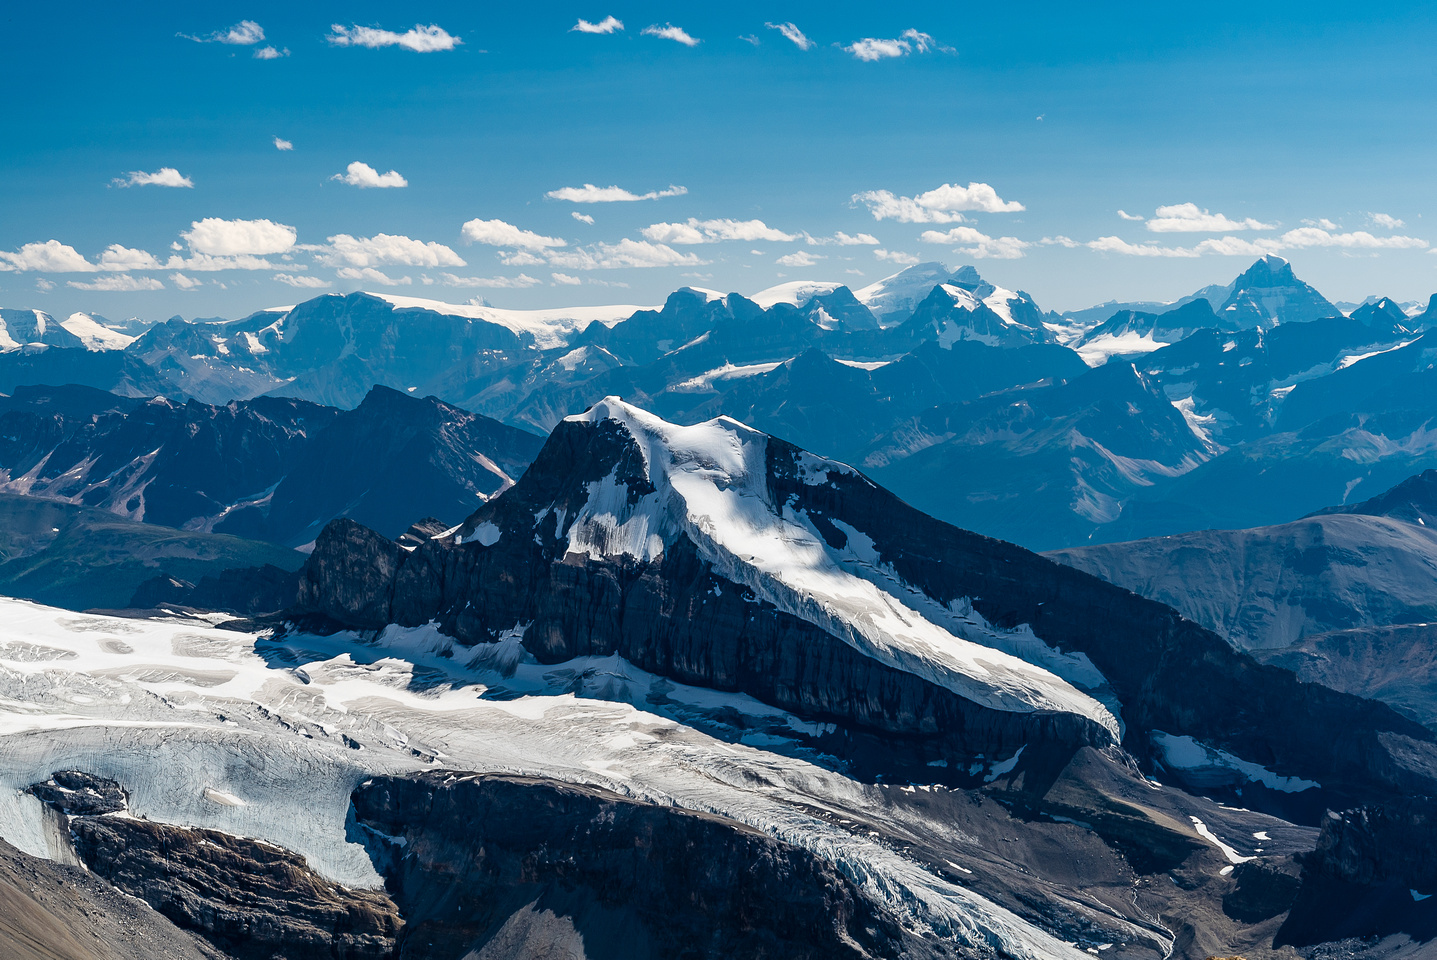 Looking over Coronet Mountain towards the north end of the Columbia Icefield with Kitchener, the Stuts, North Twin, Twins Tower, Alberta.